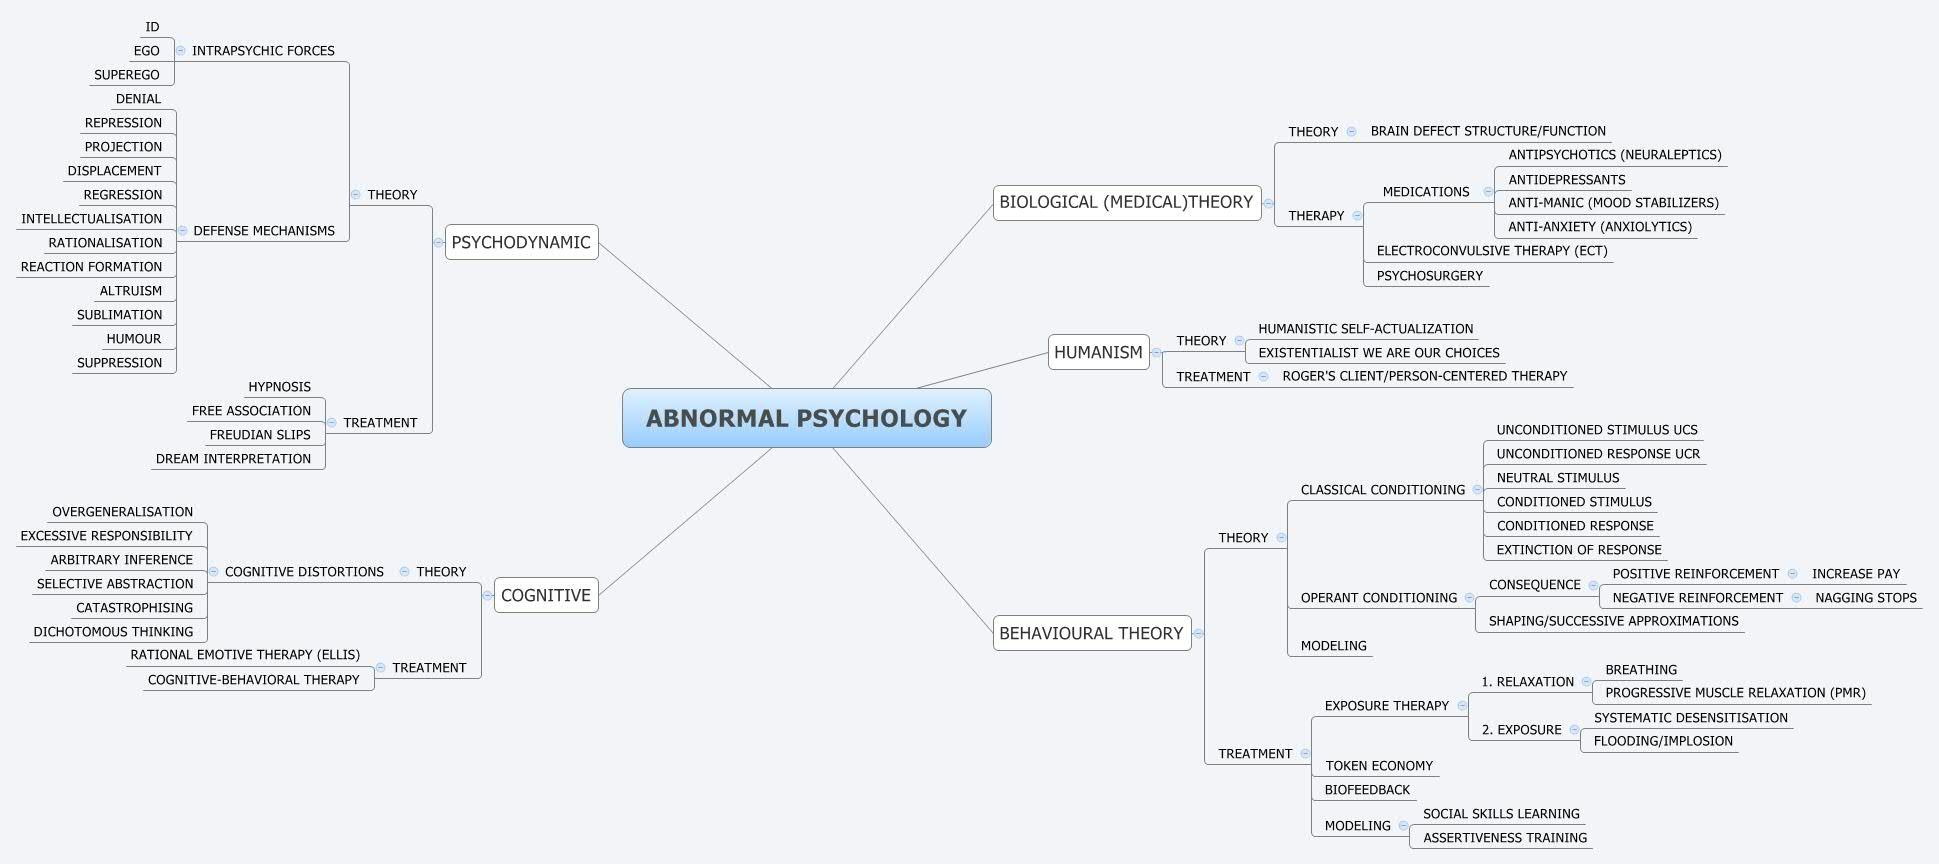 abnormal psychology mind maps - Google Search | Psychology ... on medical tools, medical terminology cartoons, medical learning, medical coding, medical terminology clip art, medical privacy policy, medical terminology flashcards, medical training, medical surgical, medical words, medical math, medical symbols, medical insurance, medical transcription, medical requirements, medical definitions, medical terminology worksheets, medical abbreviations,